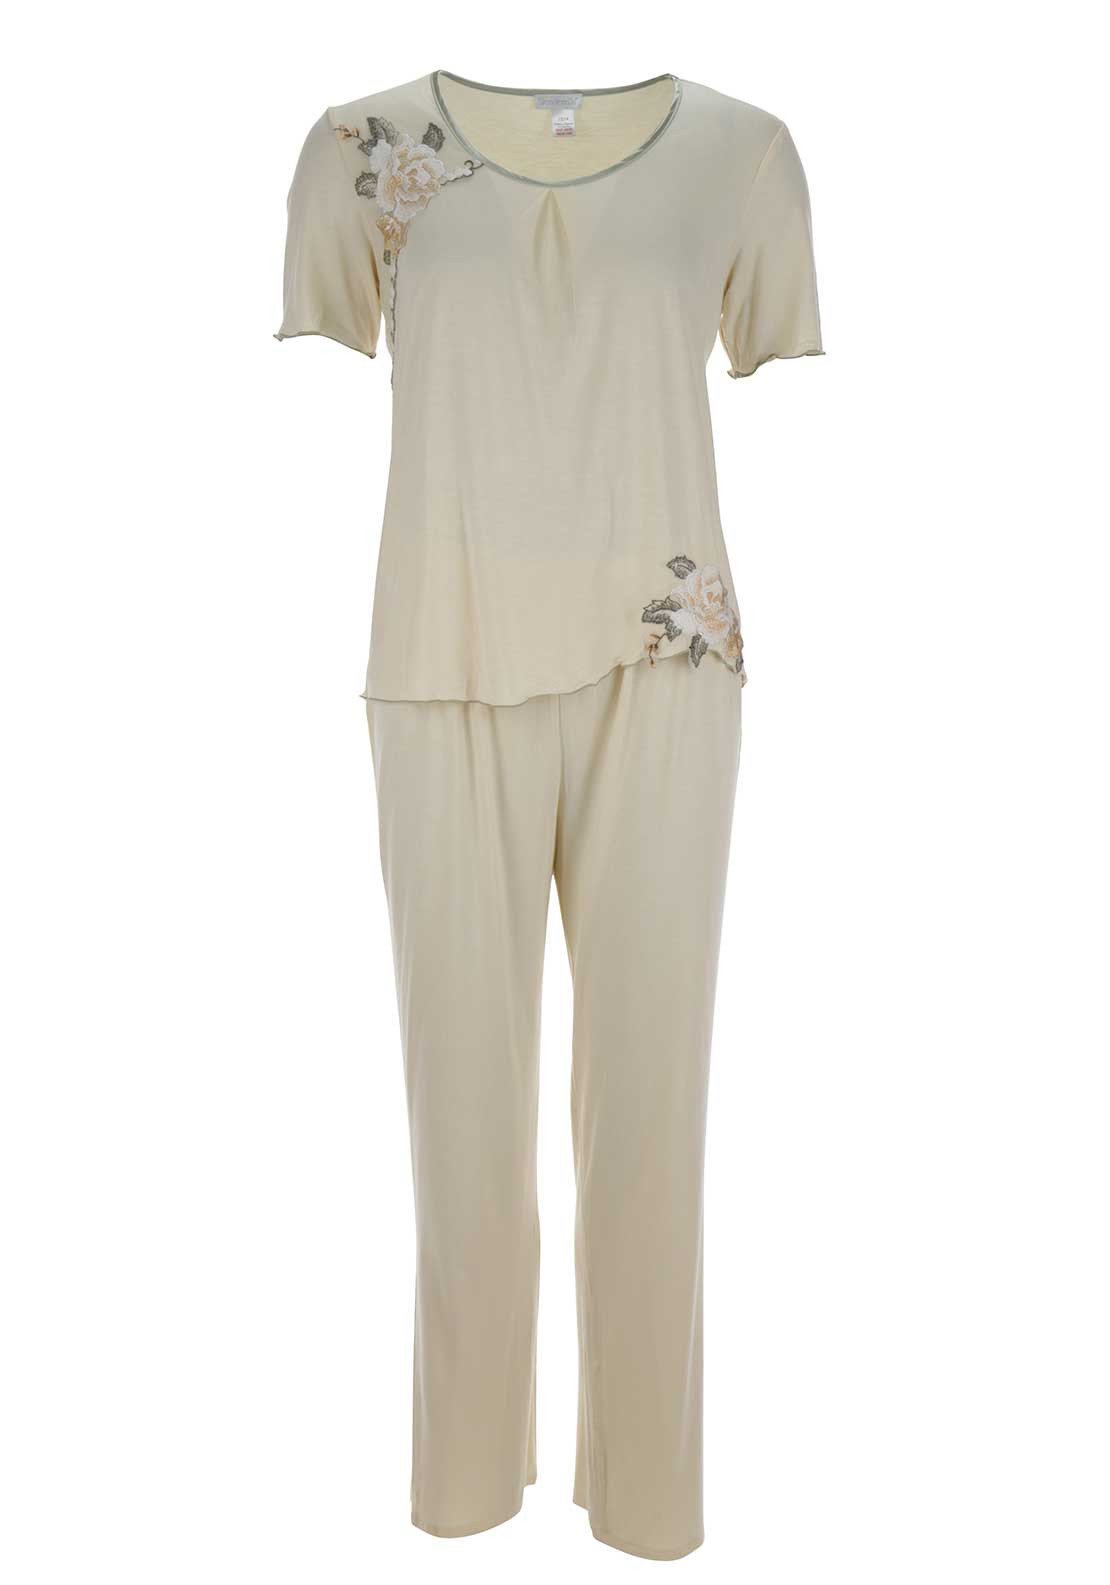 Slenderella Embroidered Trim Pyjama Set, Peach